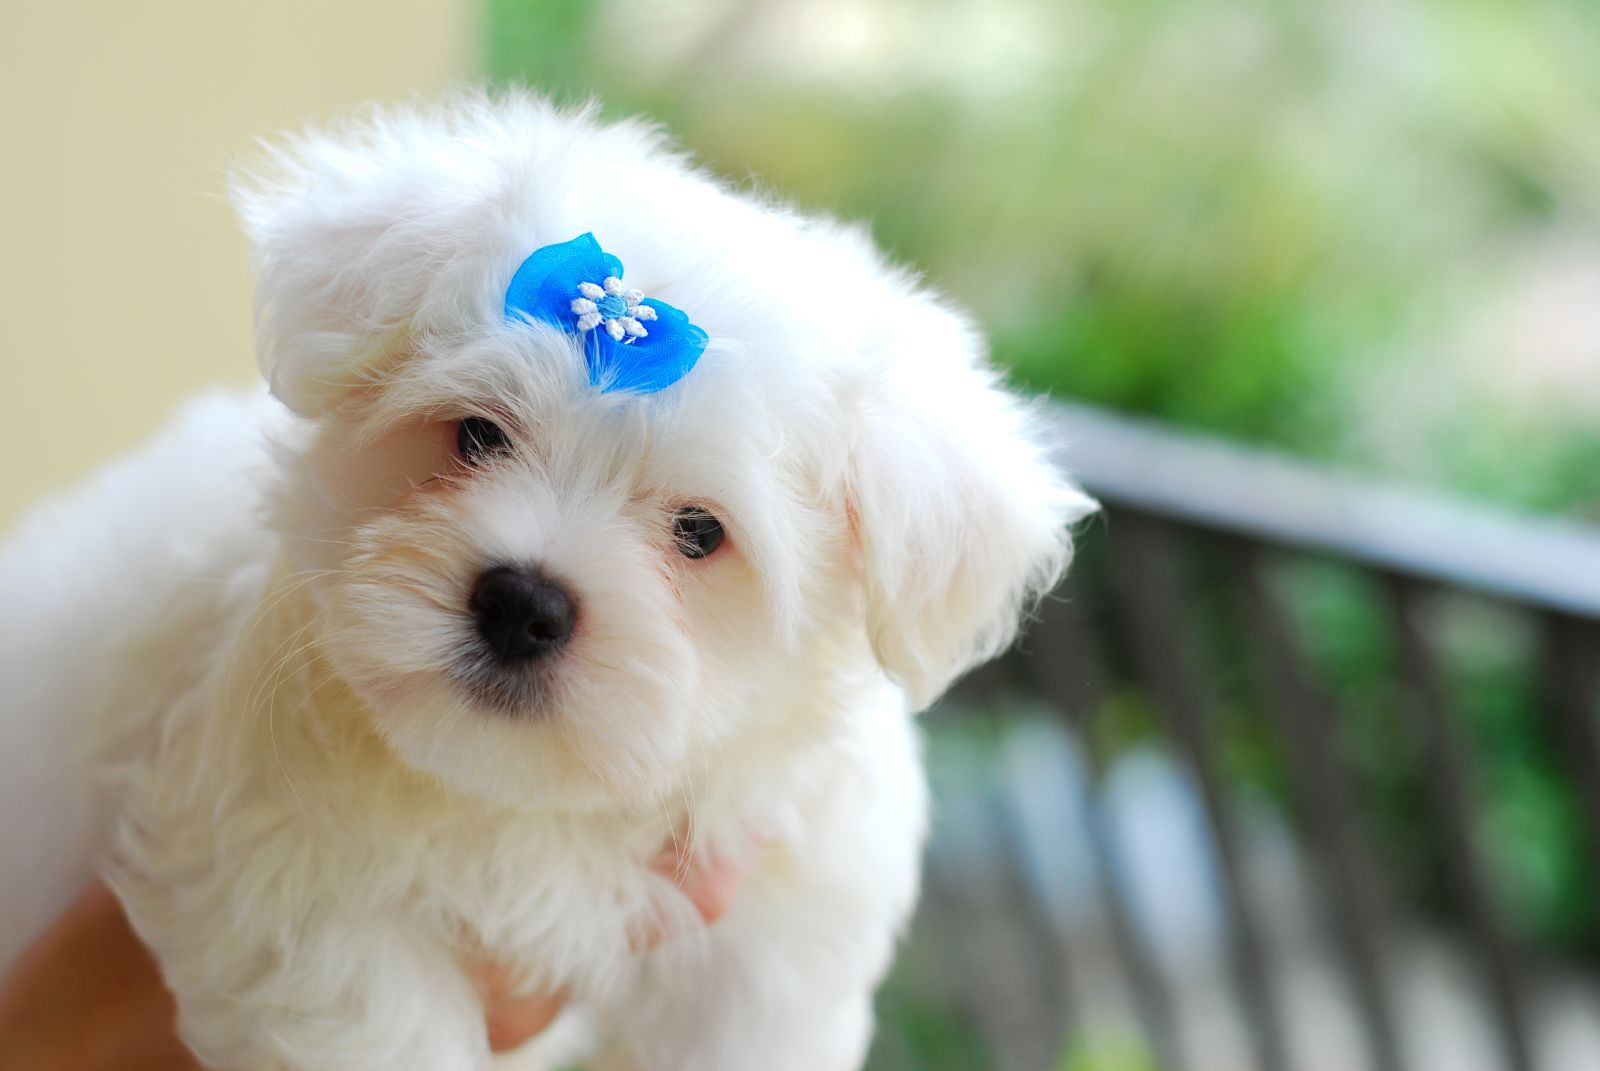 Small fluffy white dog with a blue bow